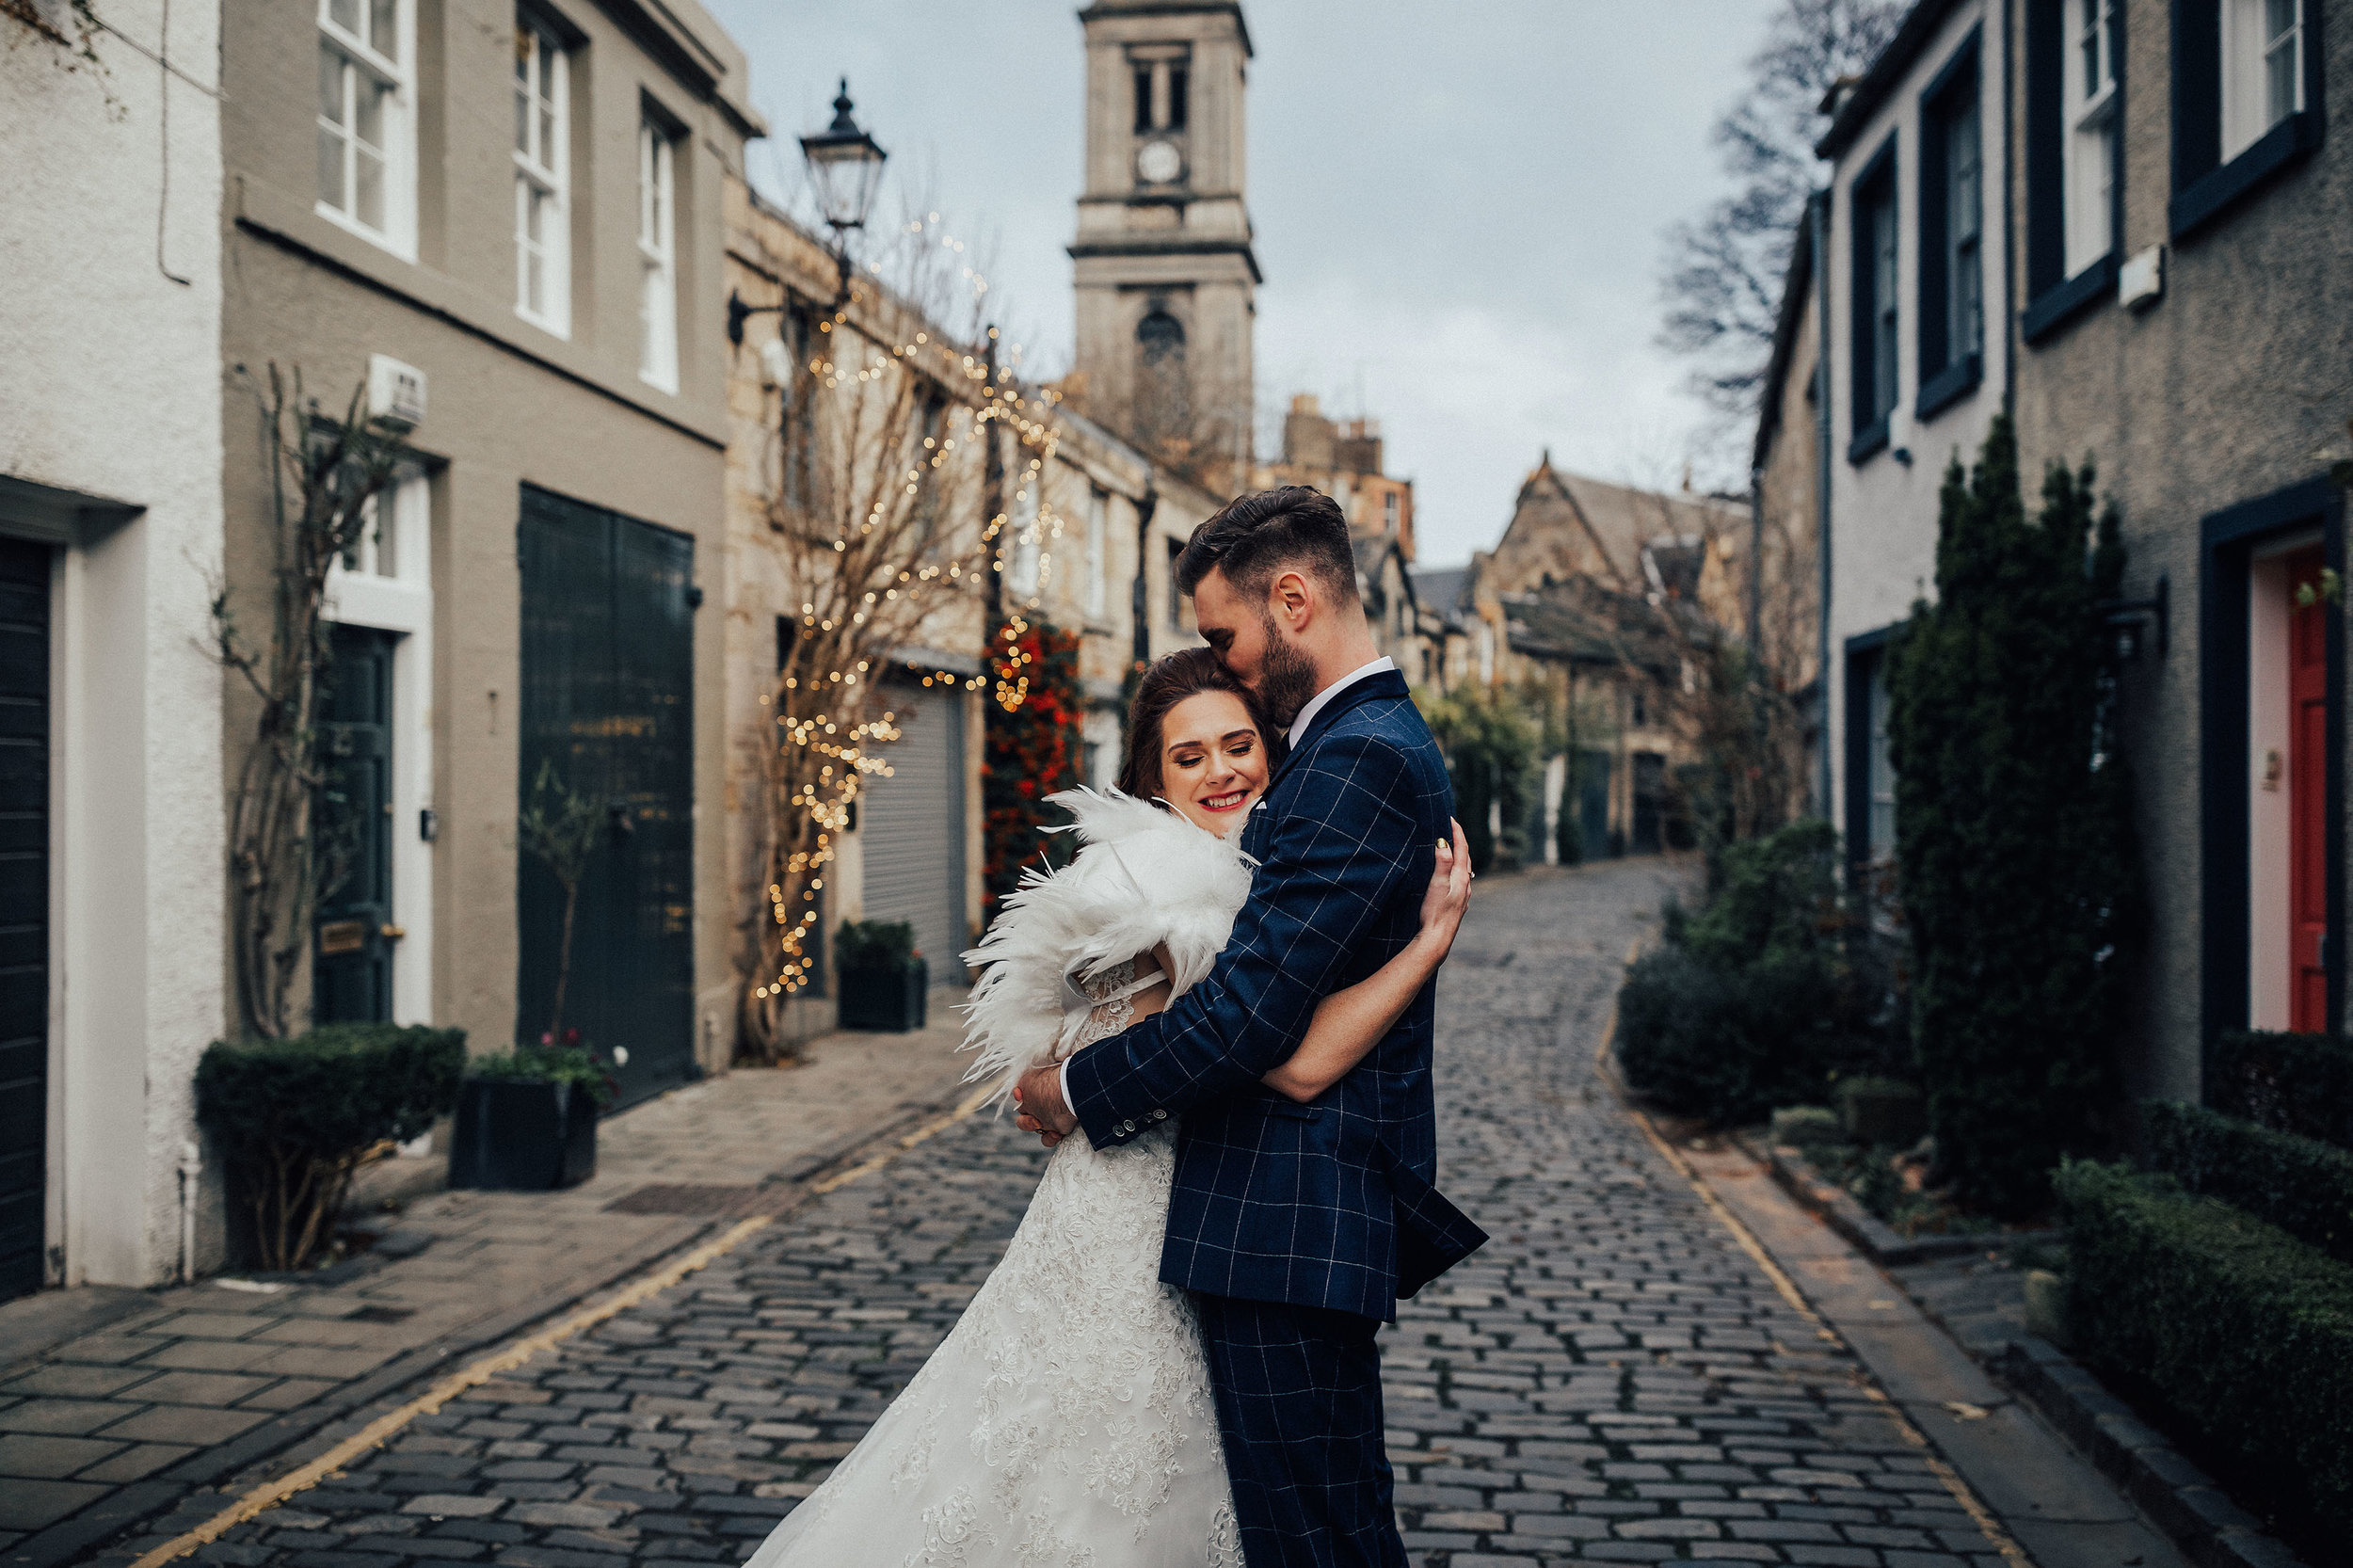 PJ_PHILLIPS_PHOTOGRAPHY_2018_SCOTLAND_WEDDING_PHOTOOGRAPHER_400.jpg